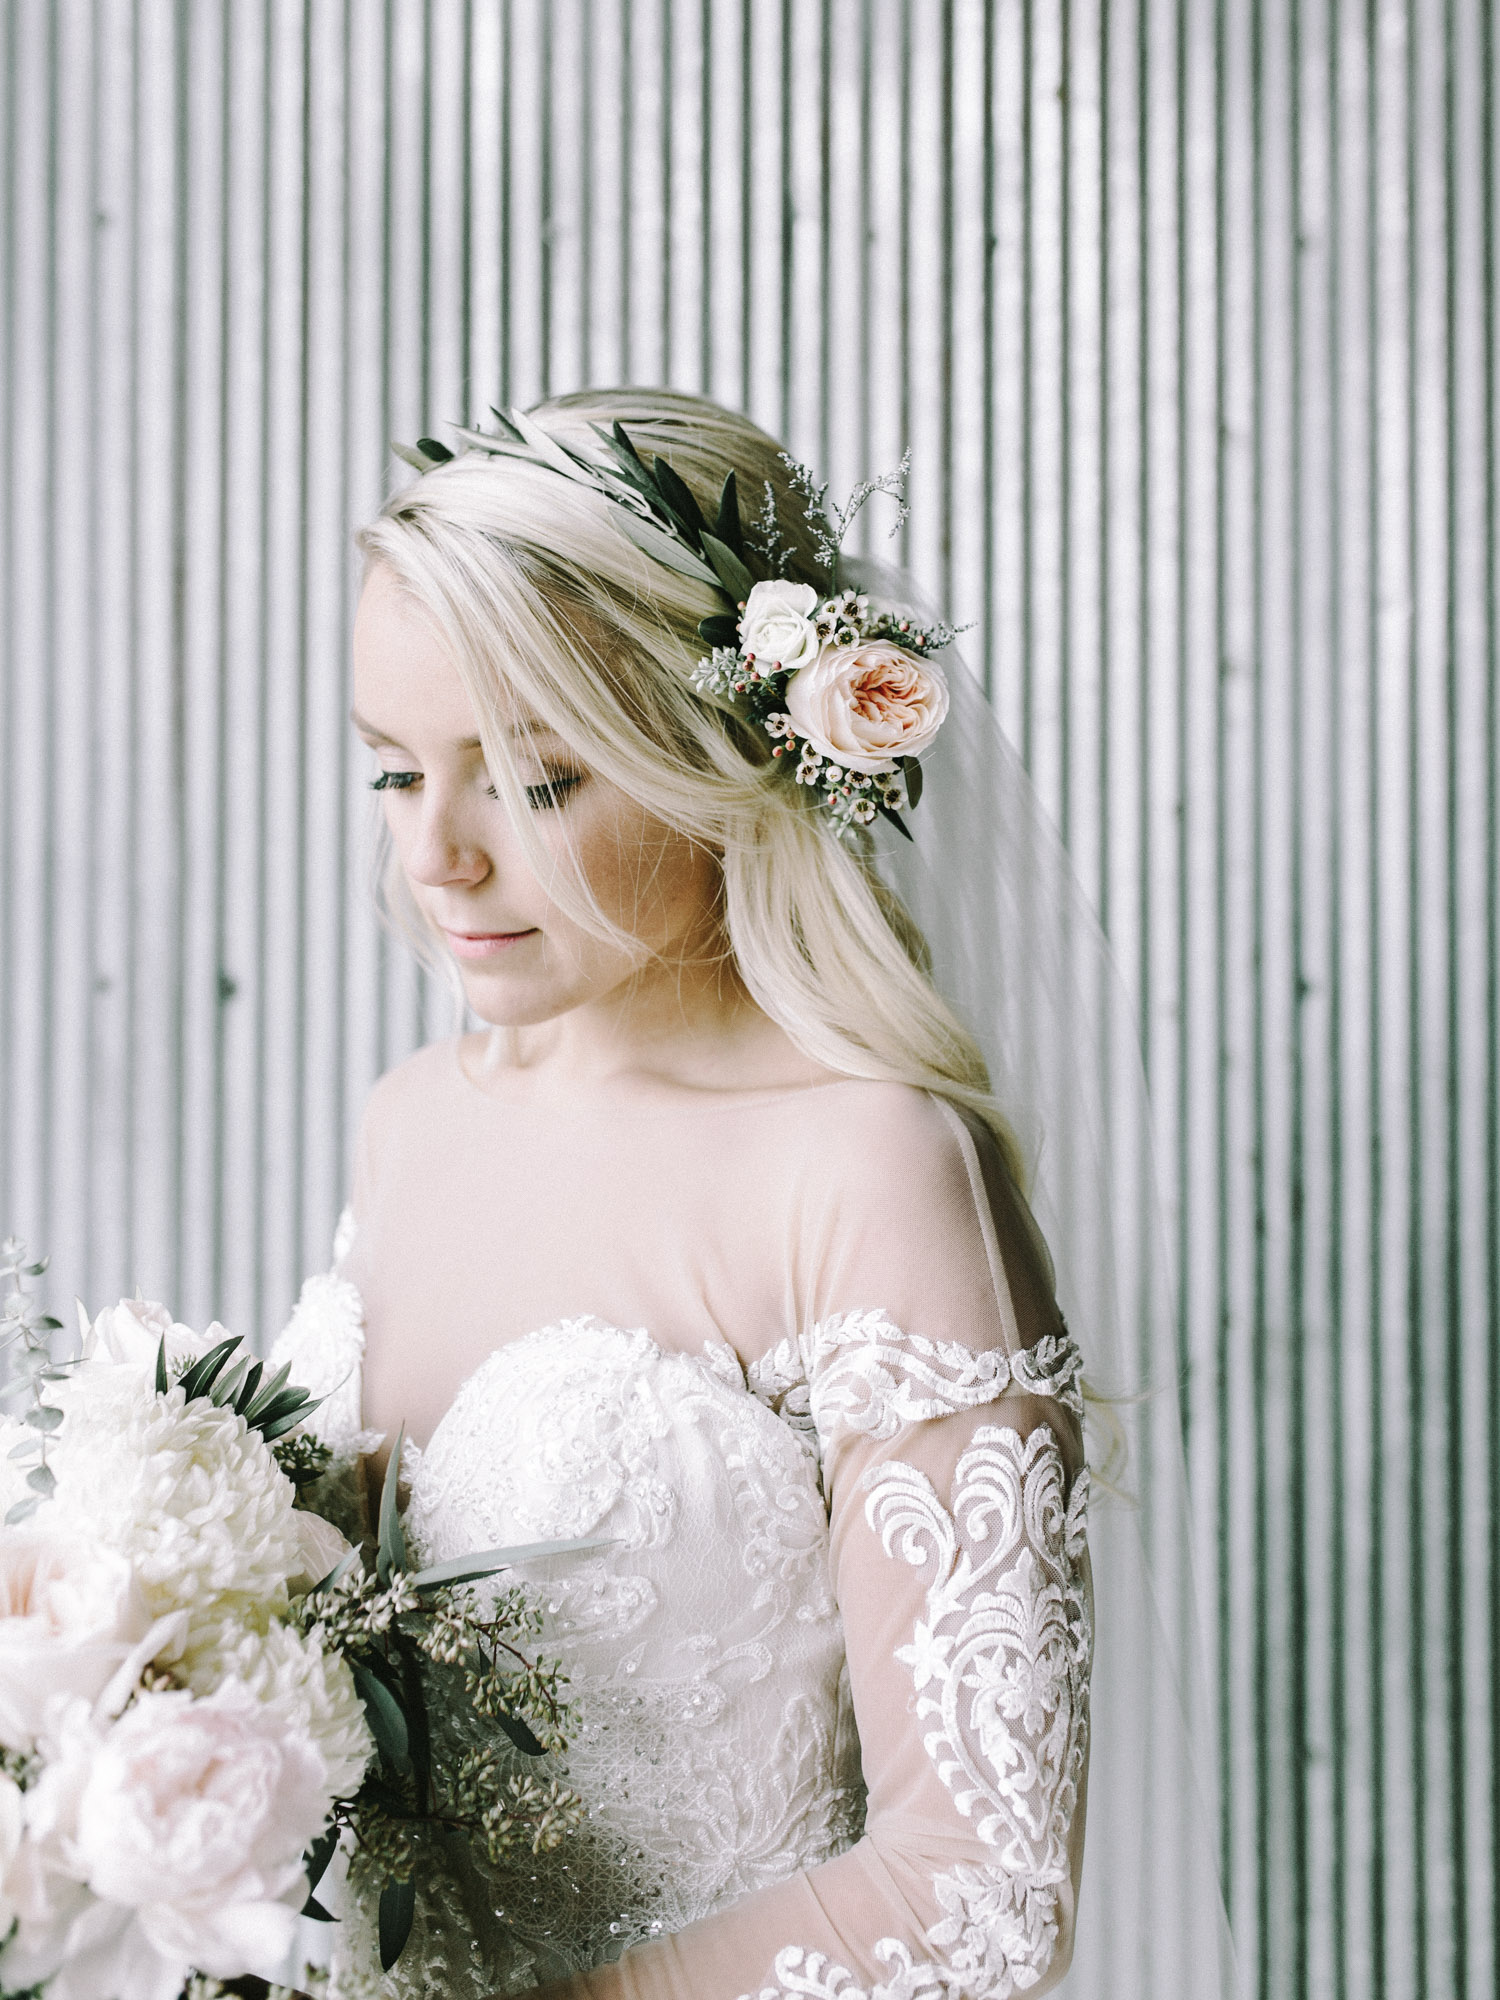 A bride in an olive flower crown looks down at her bouquet in her industrial wedding venue space, The Brick in Indiana